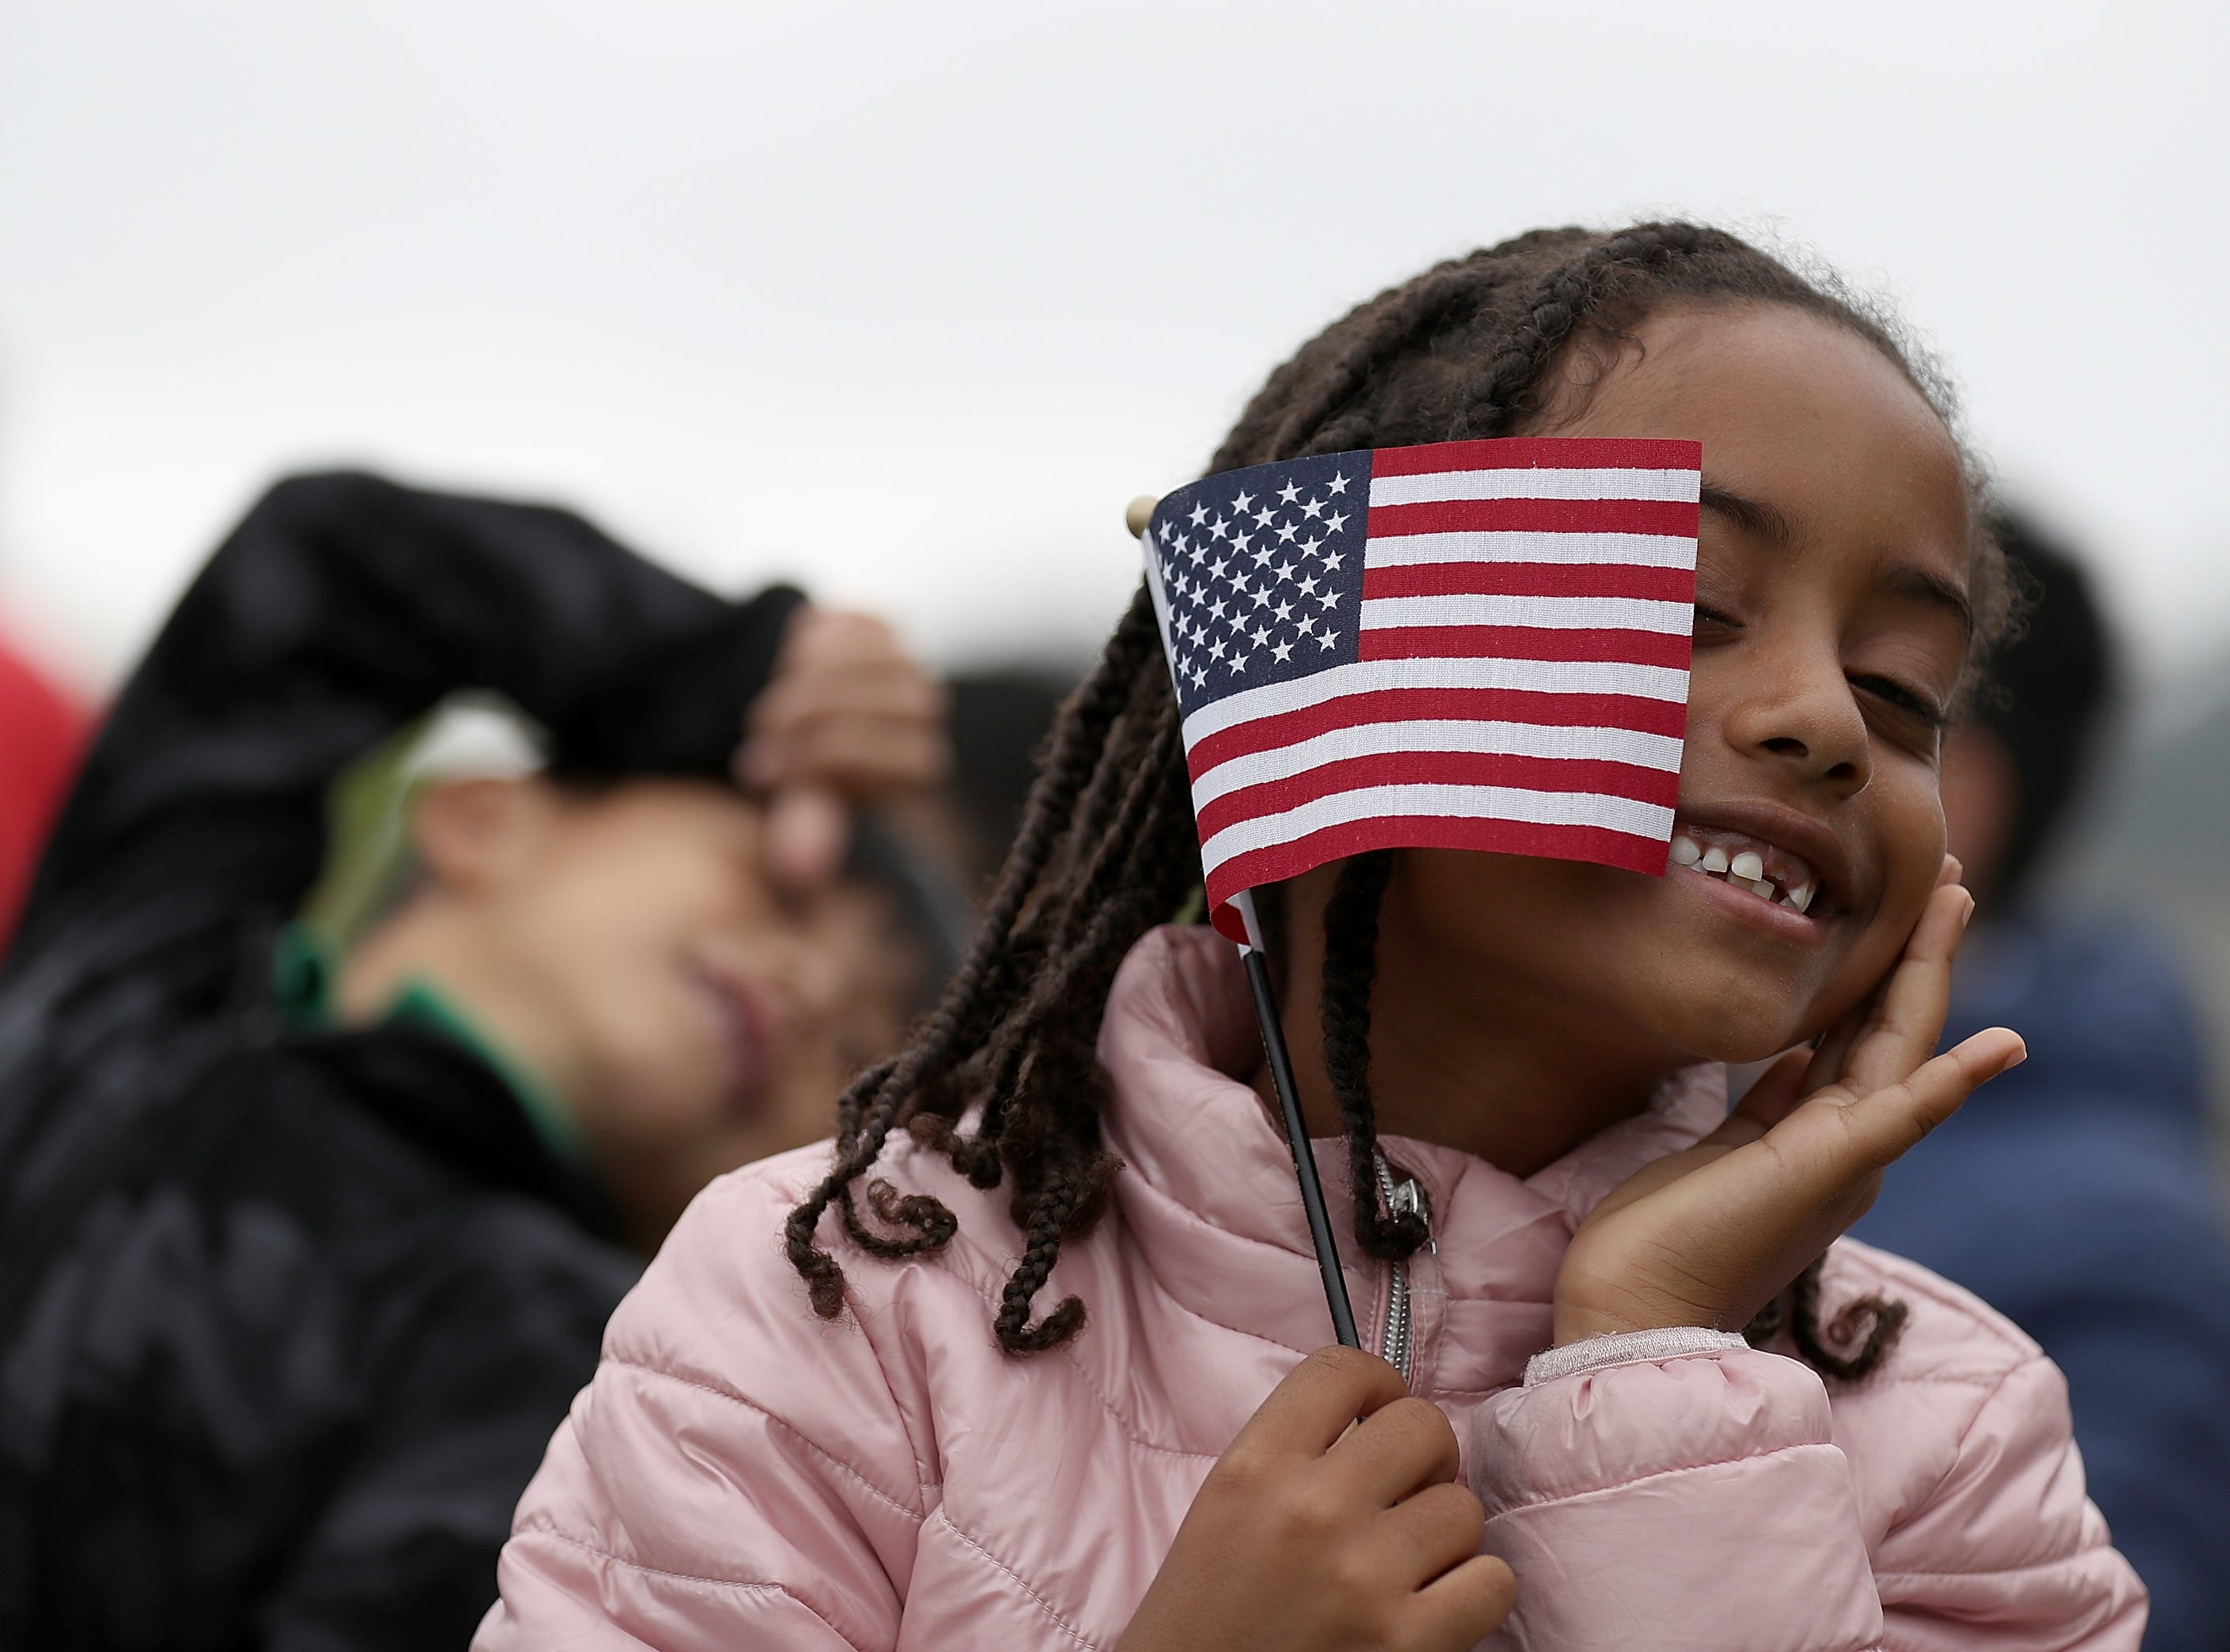 Aug. 17, 2018: Sophia Biniam, 7, holds an American flag during a naturalization ceremony for kids between the ages of 6-12 at Crissy Field near the Golden Gate Bridge in San Francisco, Calif. Thirty-two children from seven countries were sworn in as U.S. citizens during a special naturalization ceremony.